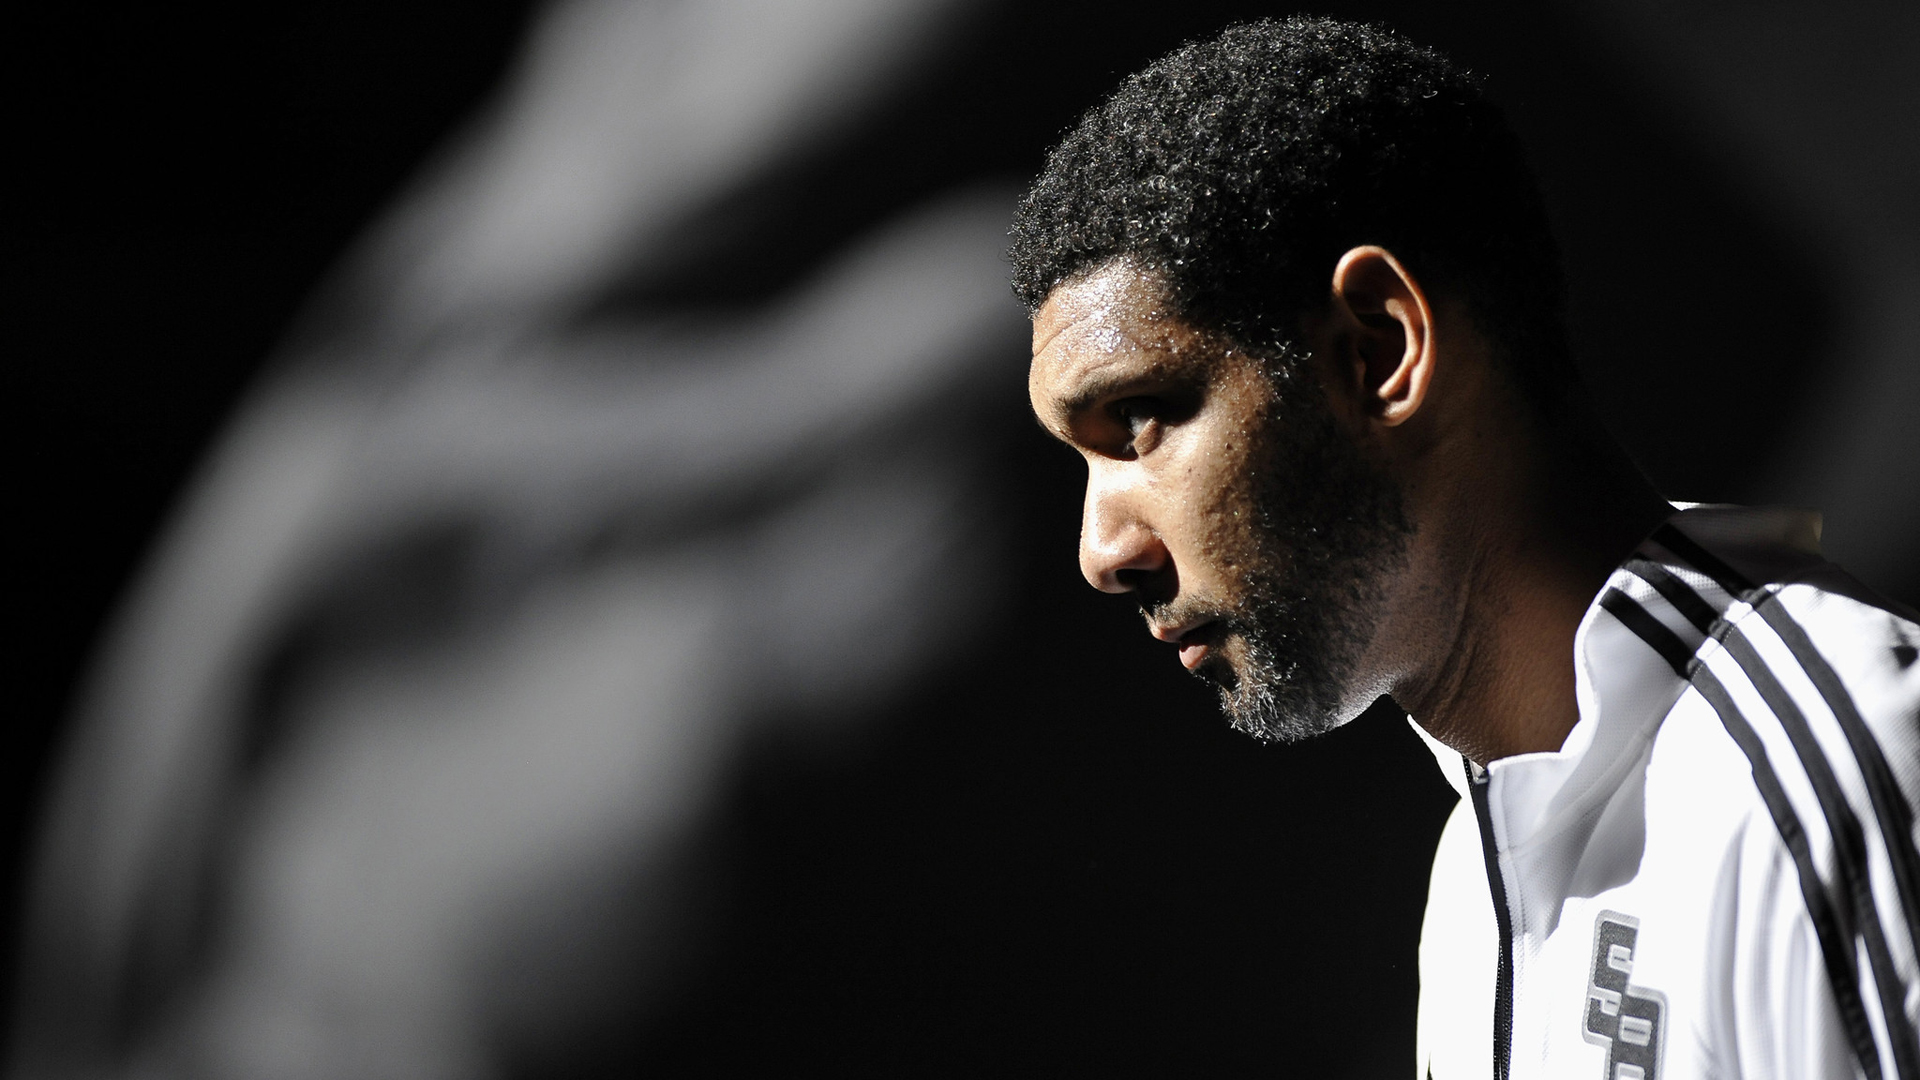 Tim duncan wallpapers high resolution and quality download - Tim duncan iphone wallpaper ...